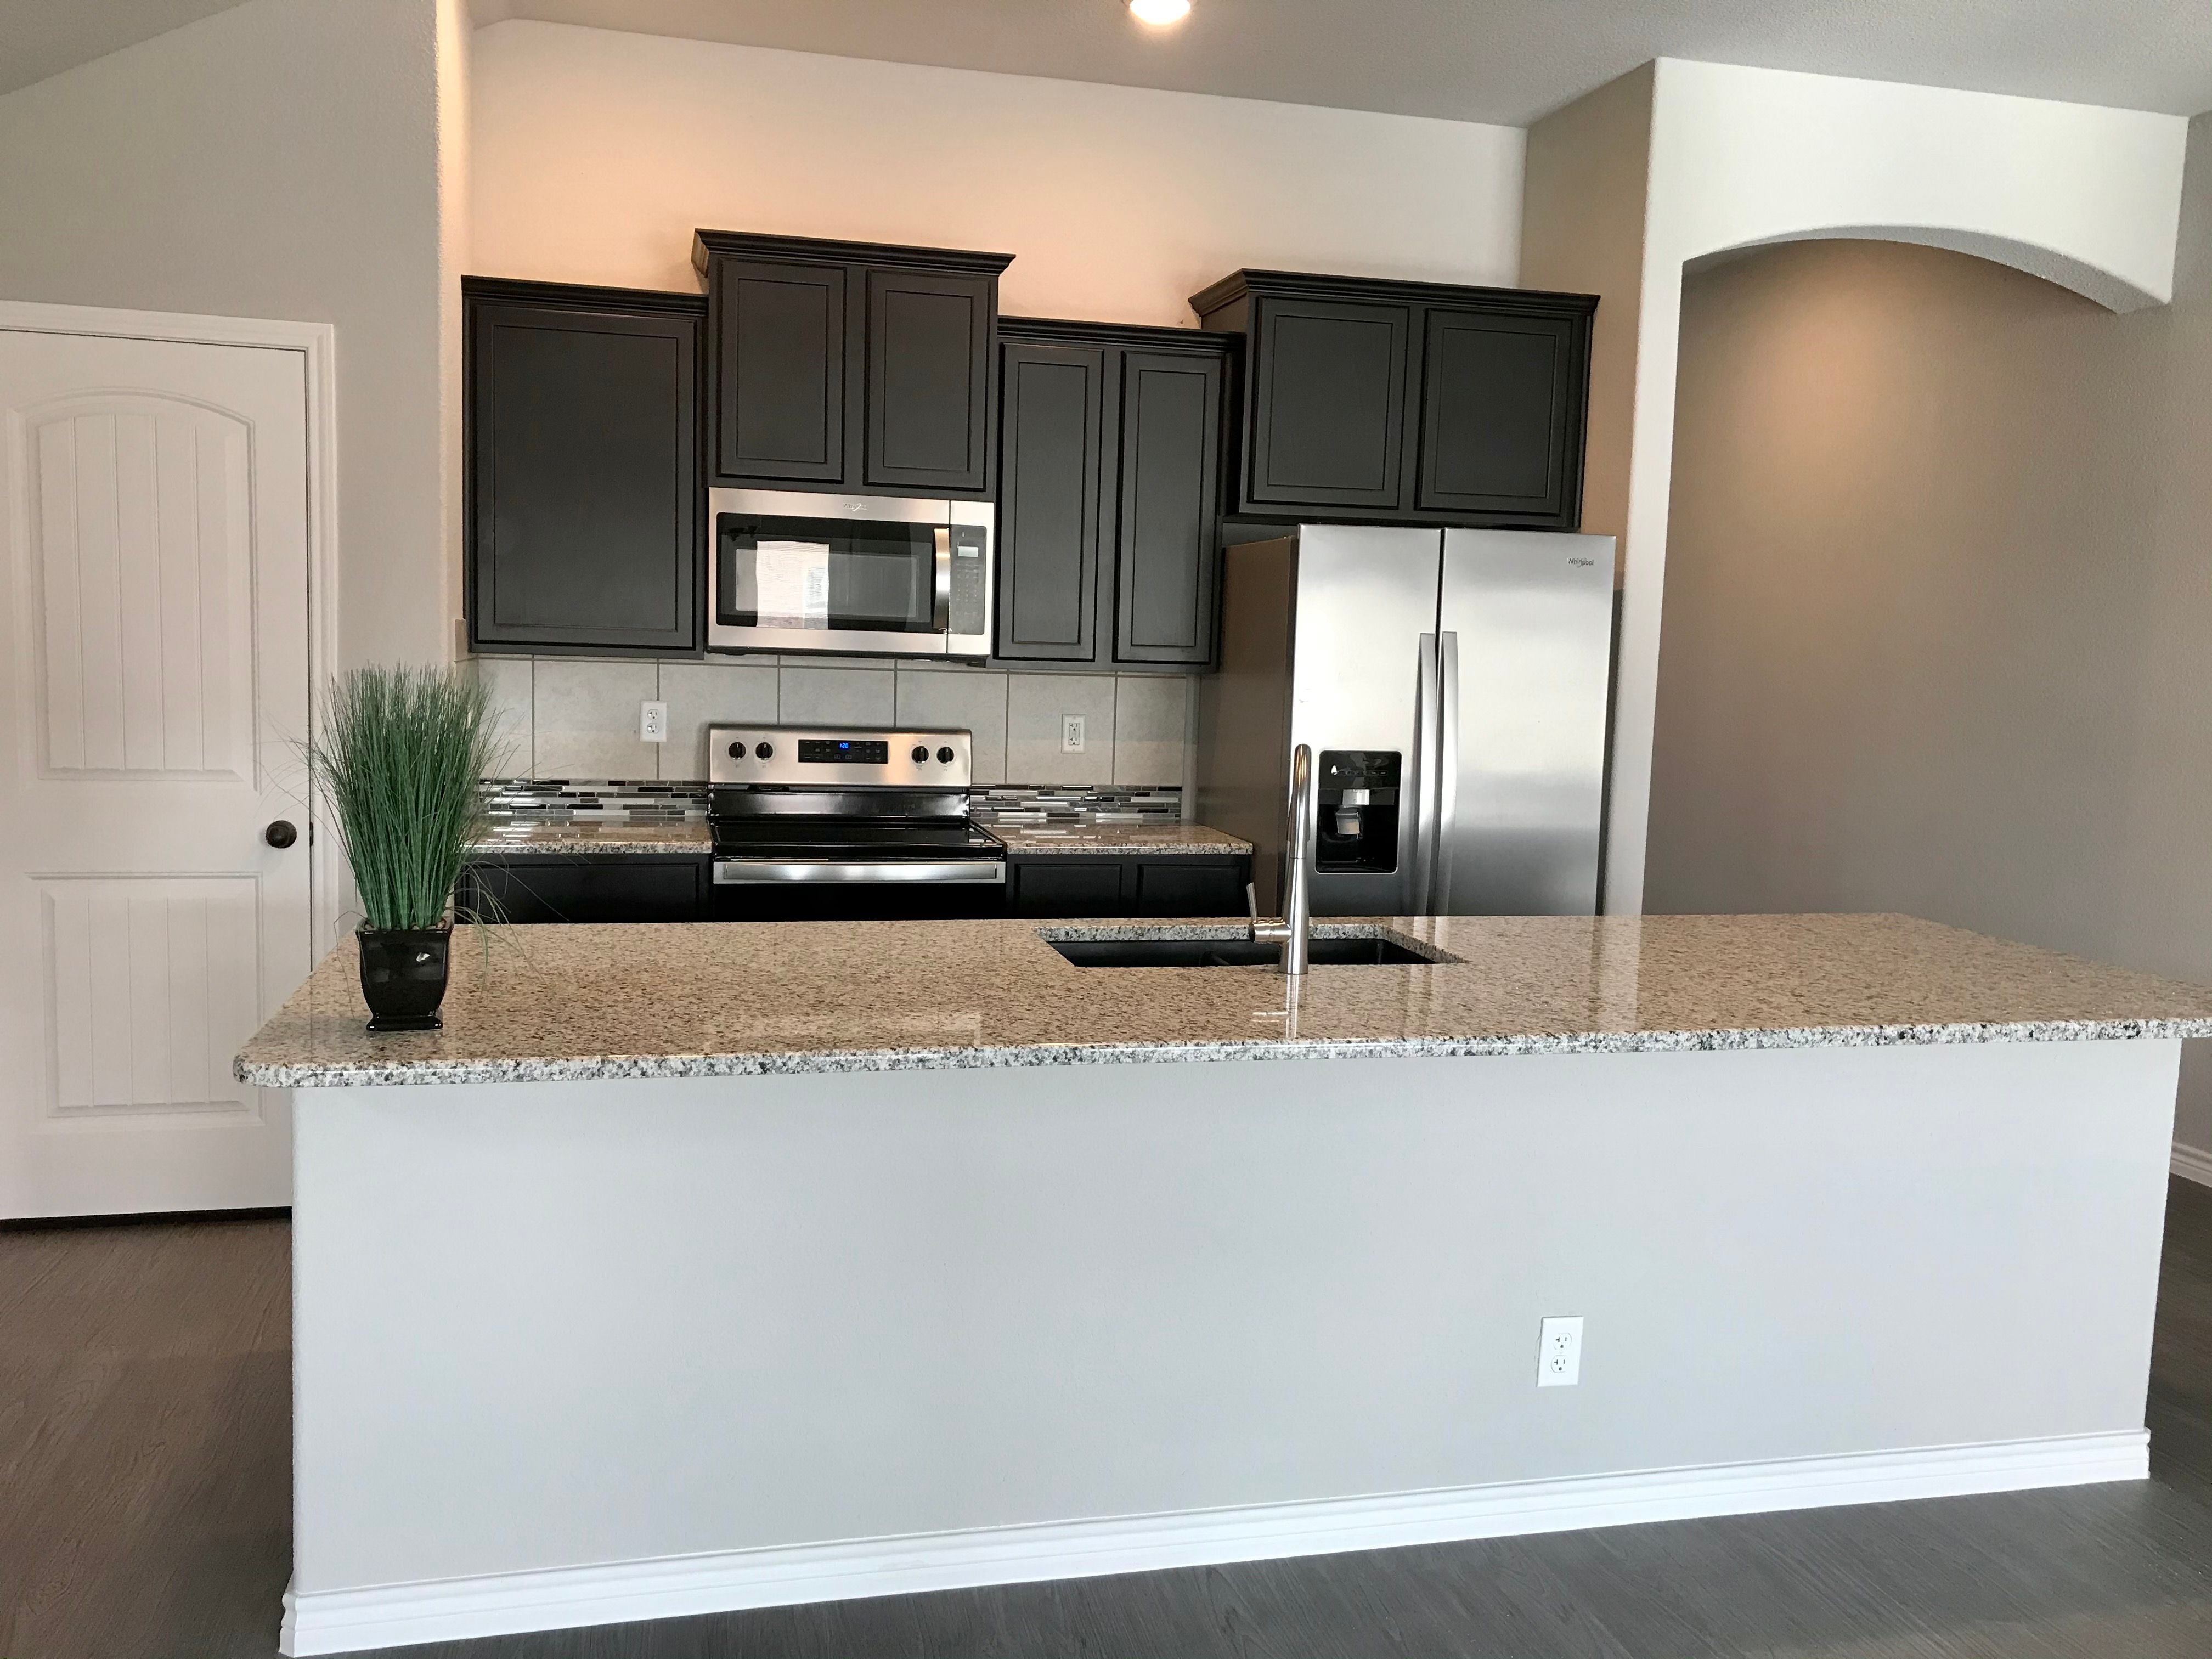 Kitchen featured in the Beals Creek By Ashford Homes in Killeen, TX